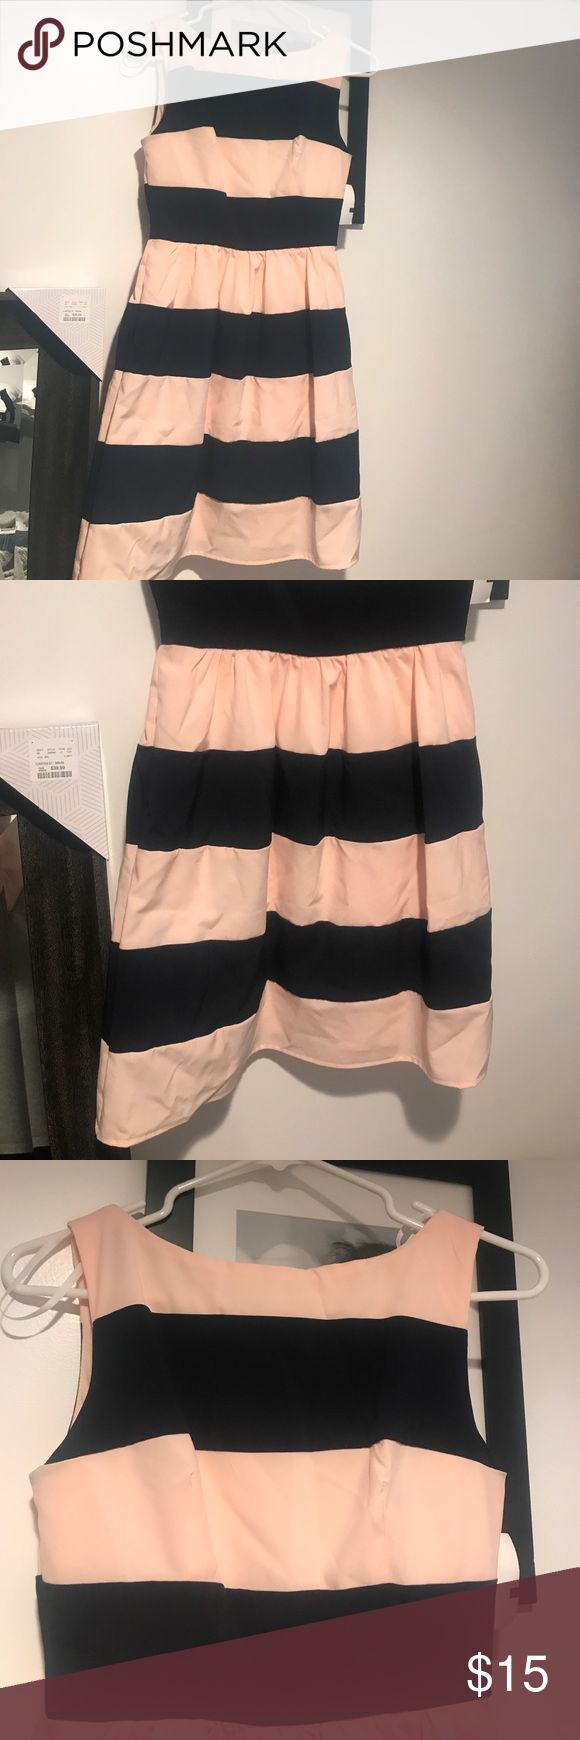 Never used classy cocktail dress Never used. Classy cocktail dress. Baby pink and navy stripes. B. Smart Dresses